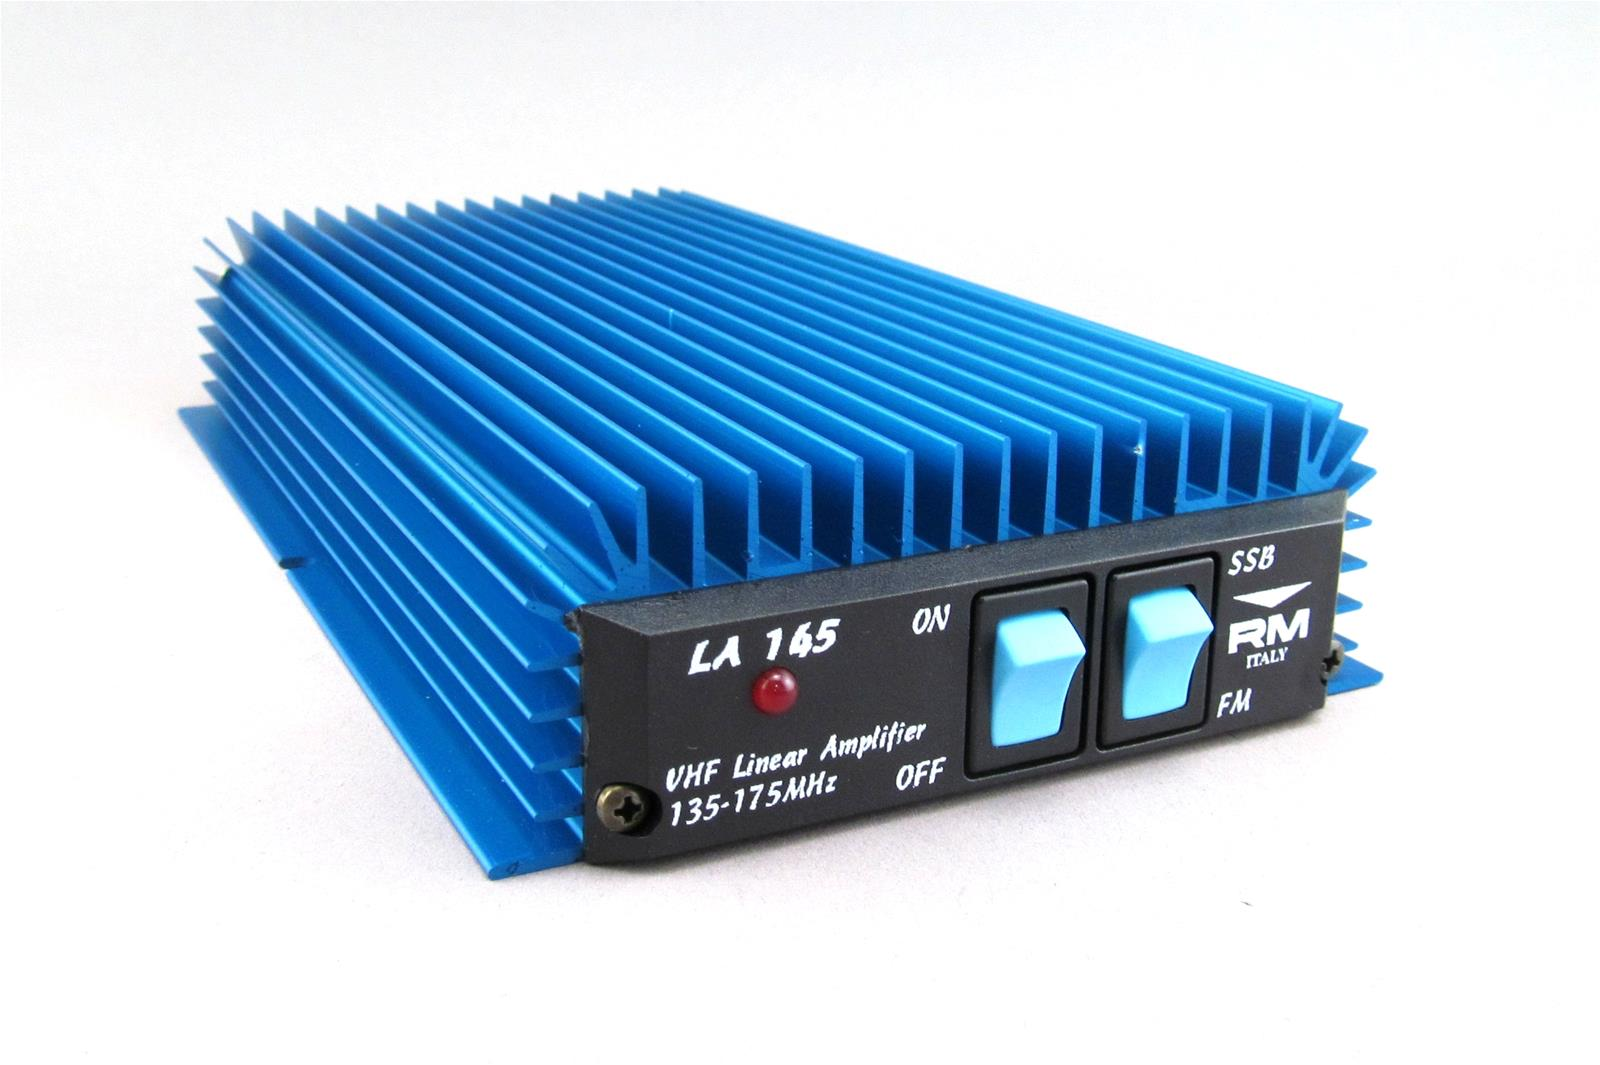 Rm Italy Vhf Ht Linear Amplifiers La 145 Free Shipping On Most 5 Watt Uhf Tv Amplifier Orders Over 99 At Dx Engineering